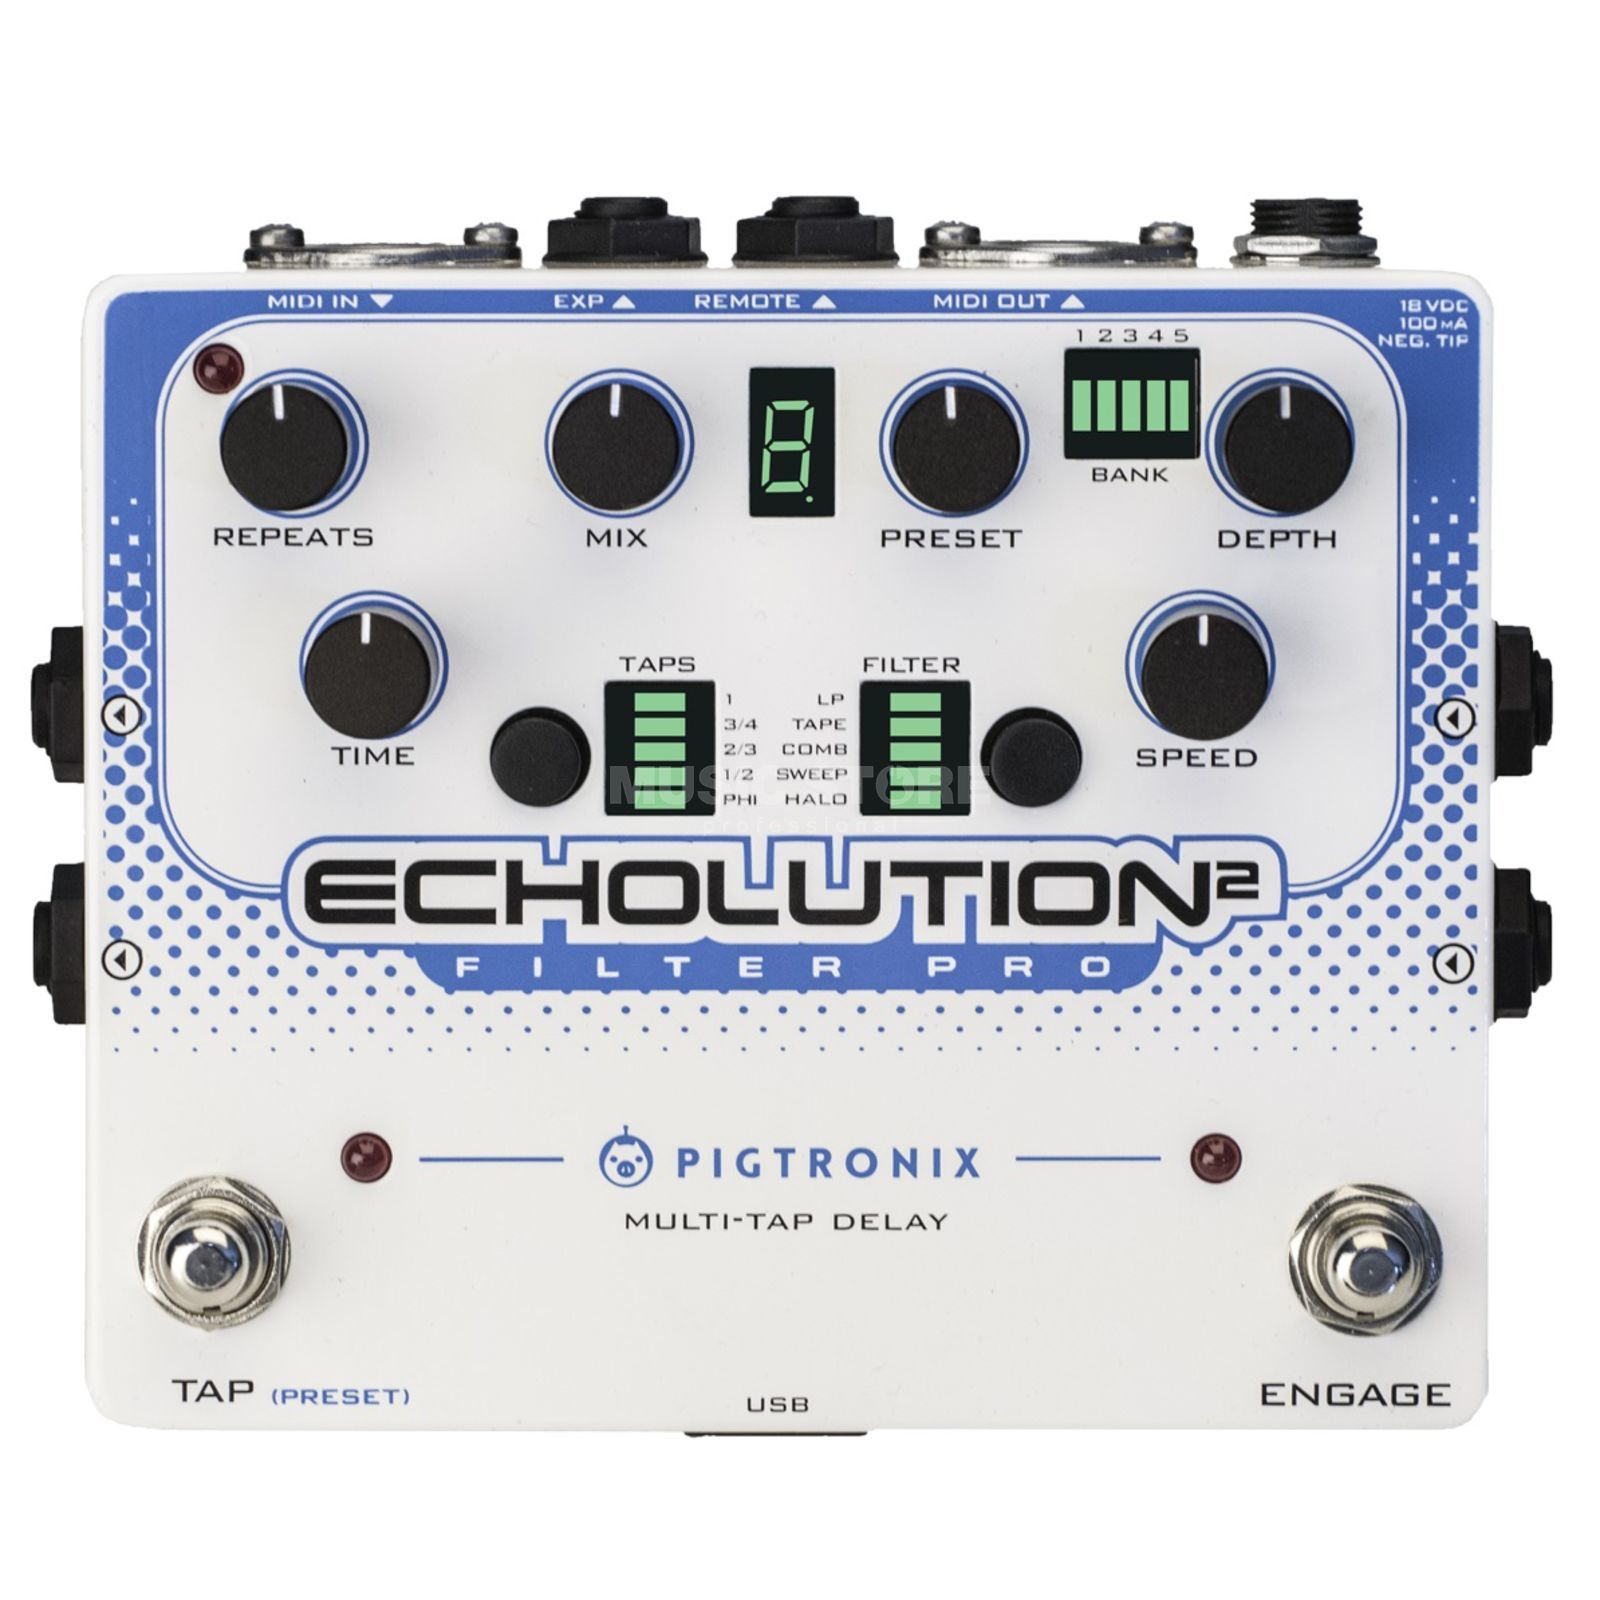 Pigtronix Effects Echolution 2 Filter Pro Produktbild